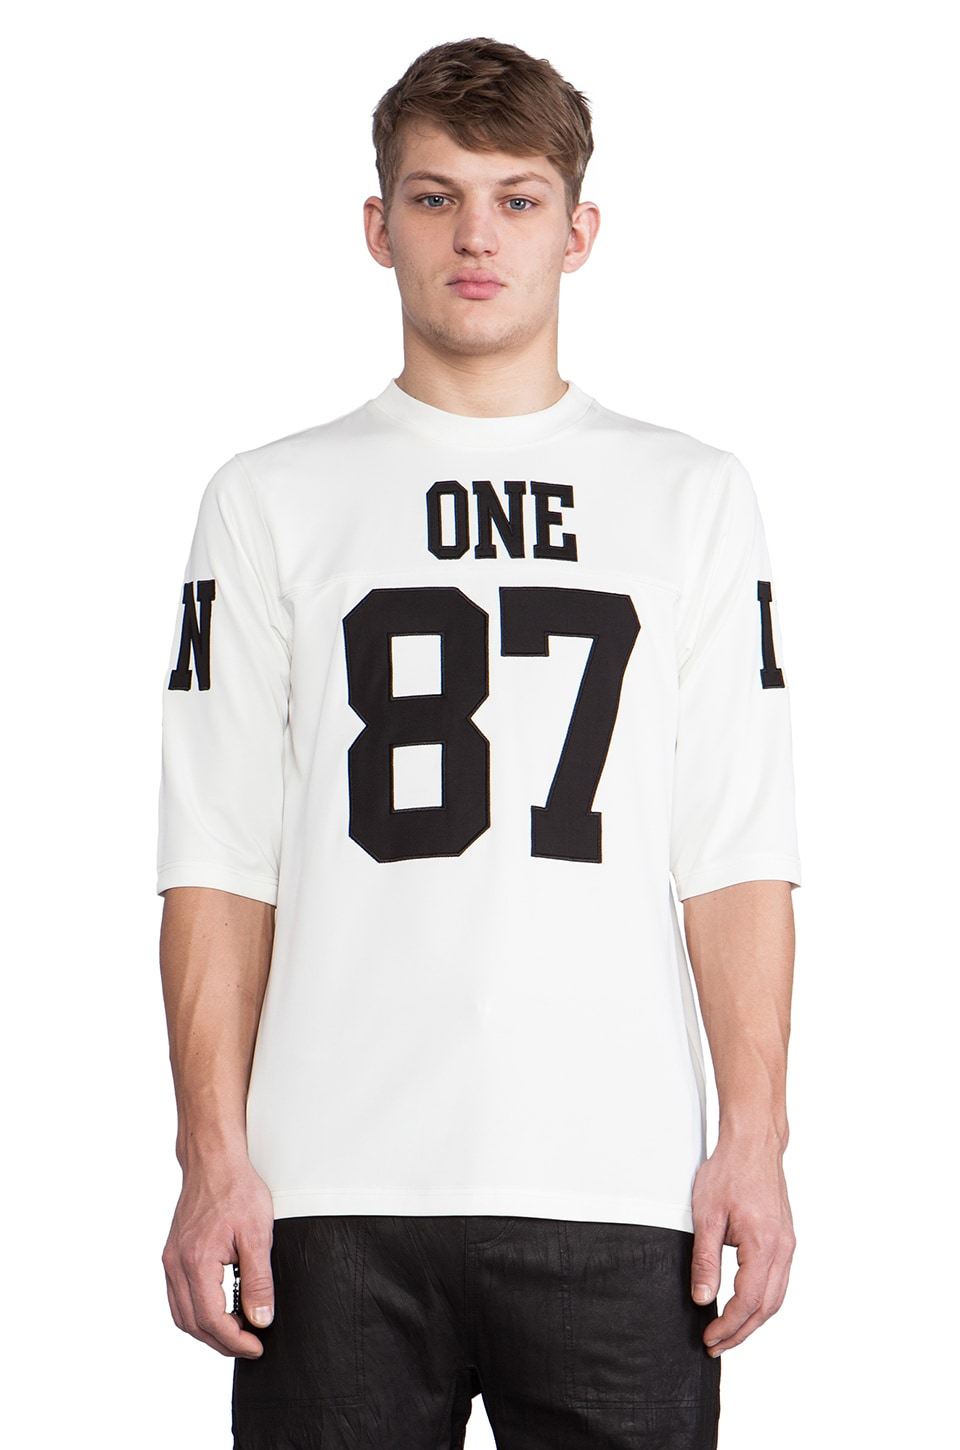 UNIF 187 Jersey in White